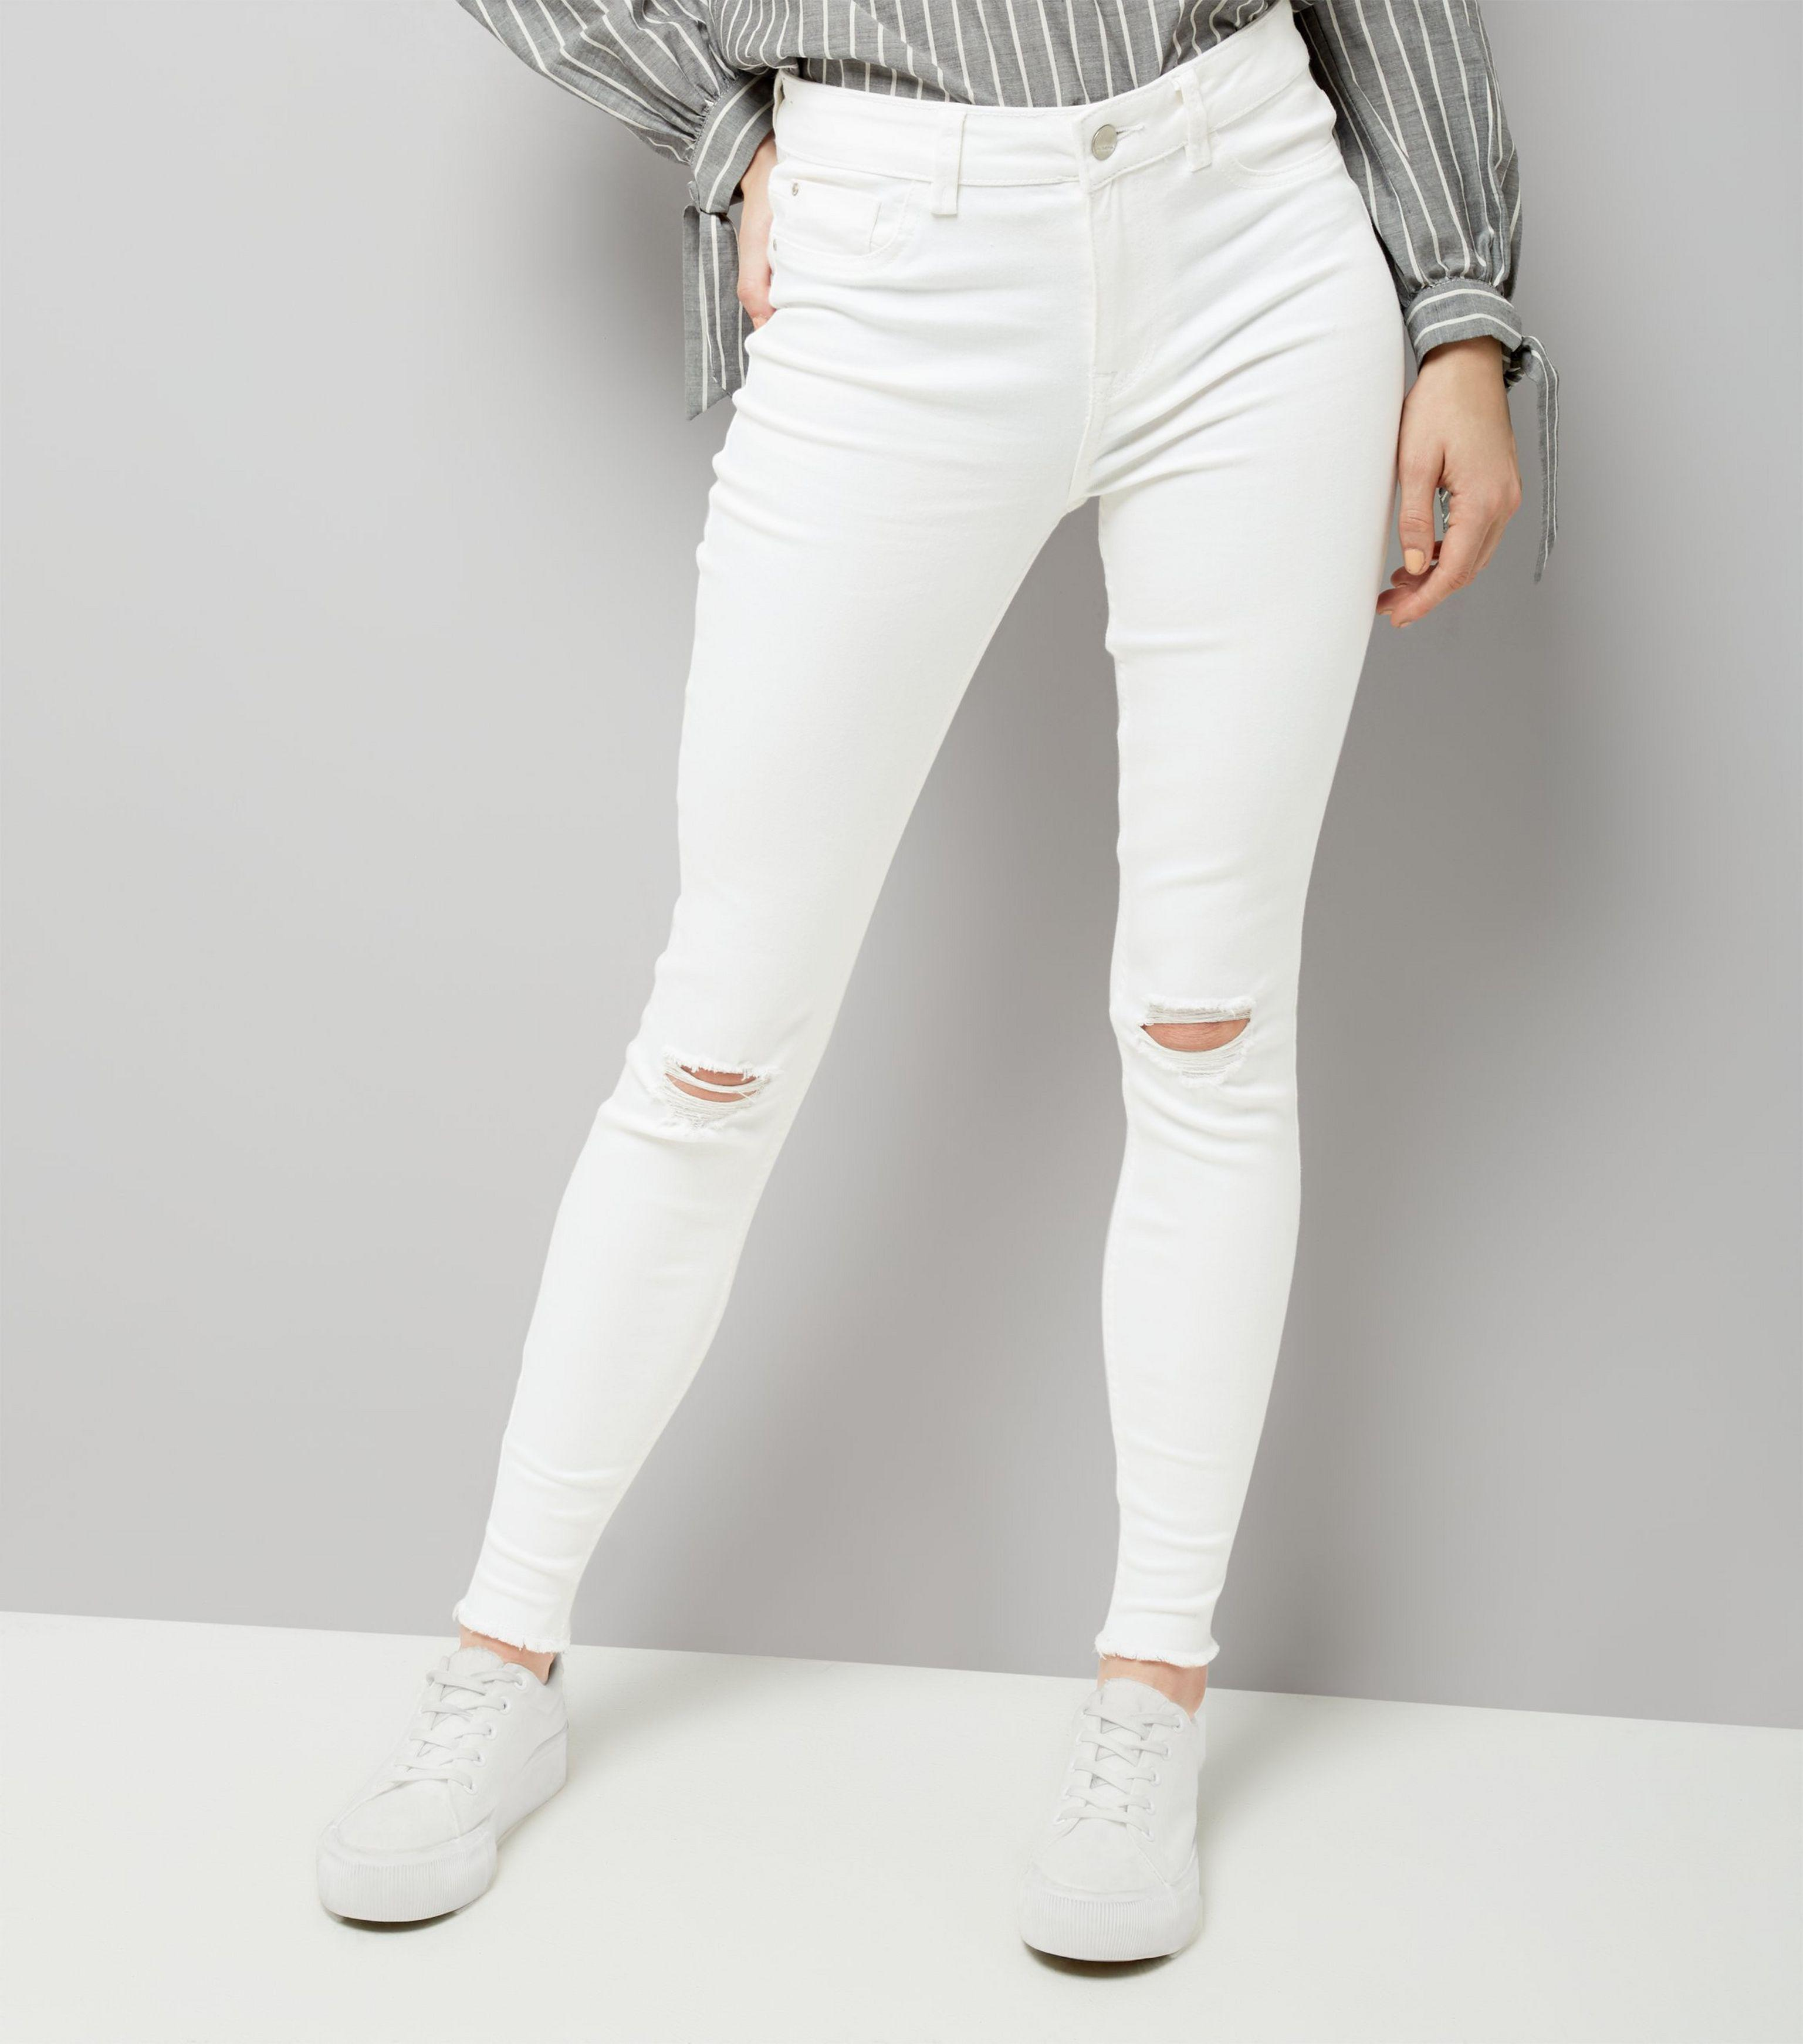 2417294adb0 New Look White Ripped Knee Fray Hem Skinny Jenna Jeans in White - Lyst